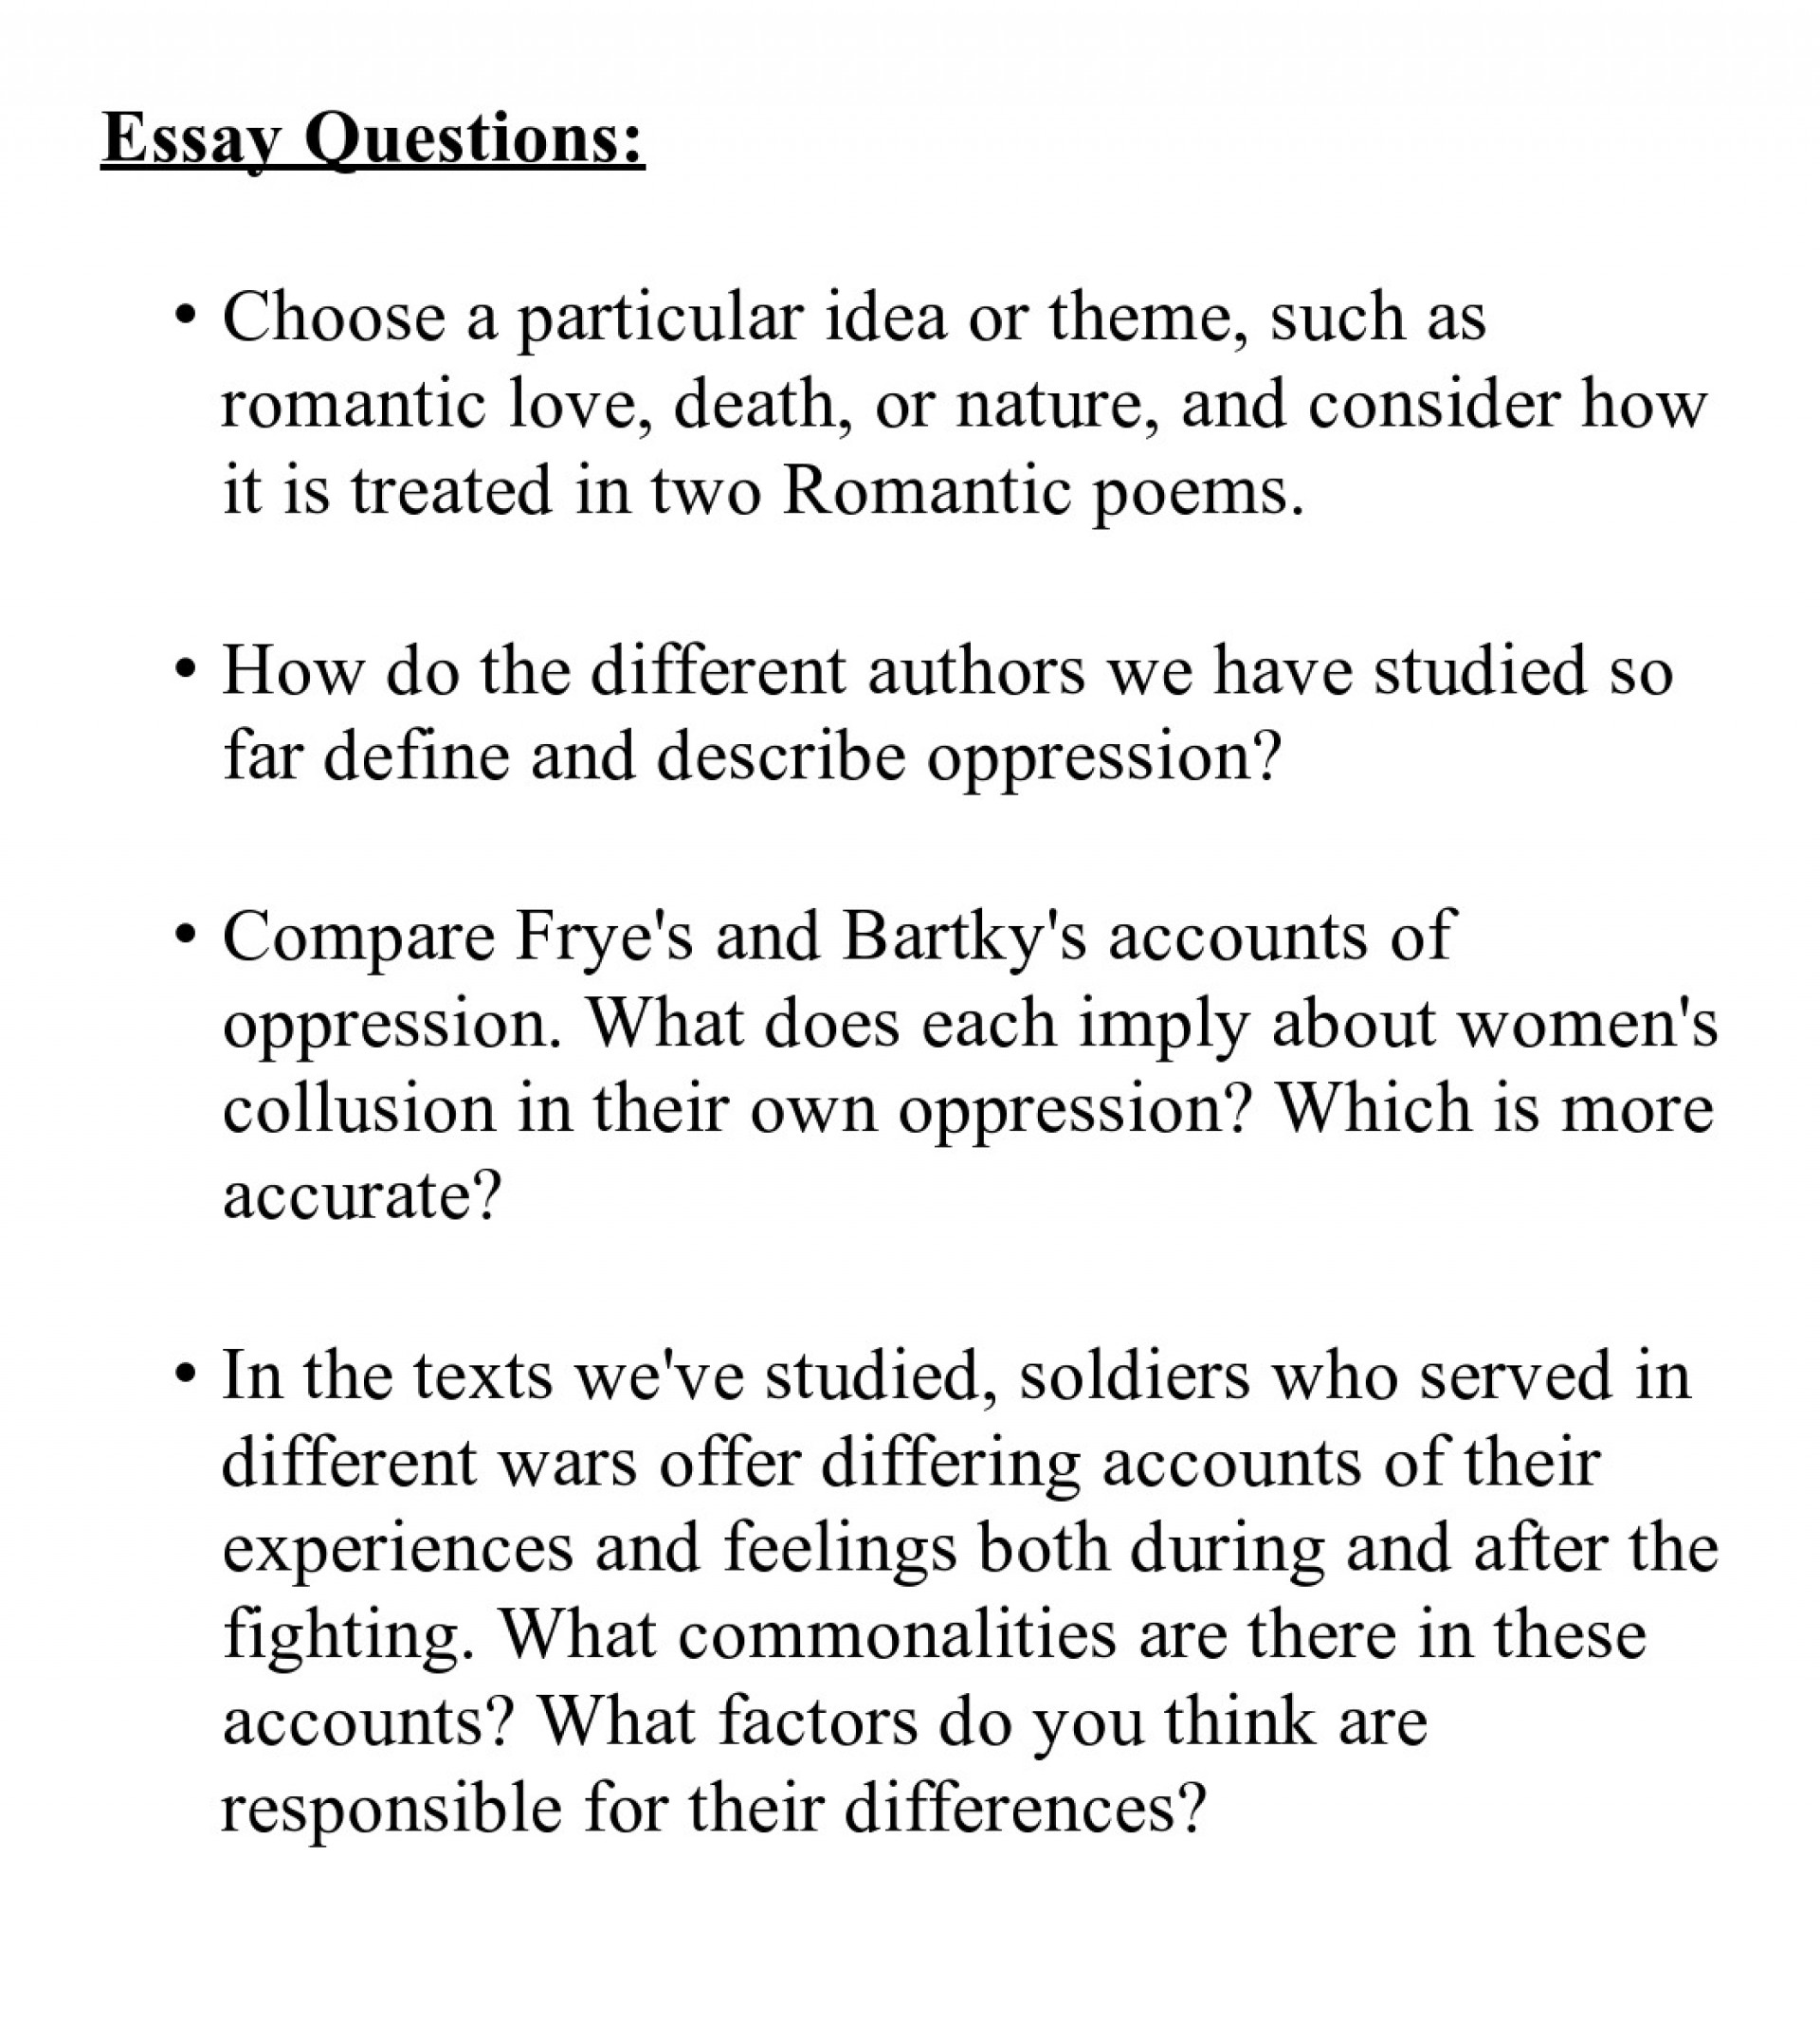 003 Essay Questions College Conclusion Surprising Good For Application Examples 1920